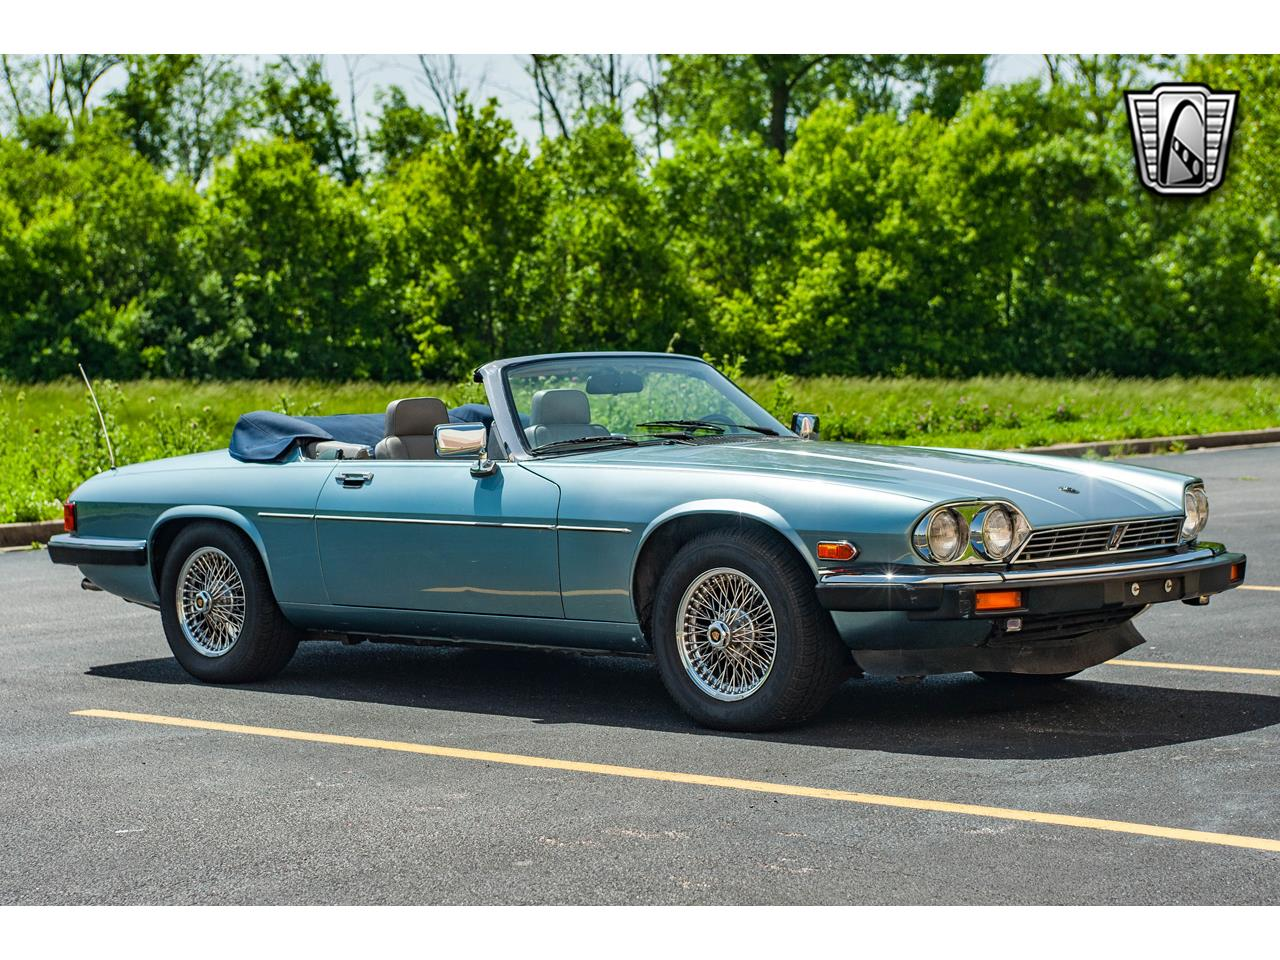 Large Picture of '90 Jaguar XJS located in Illinois - $15,500.00 Offered by Gateway Classic Cars - St. Louis - QB9E